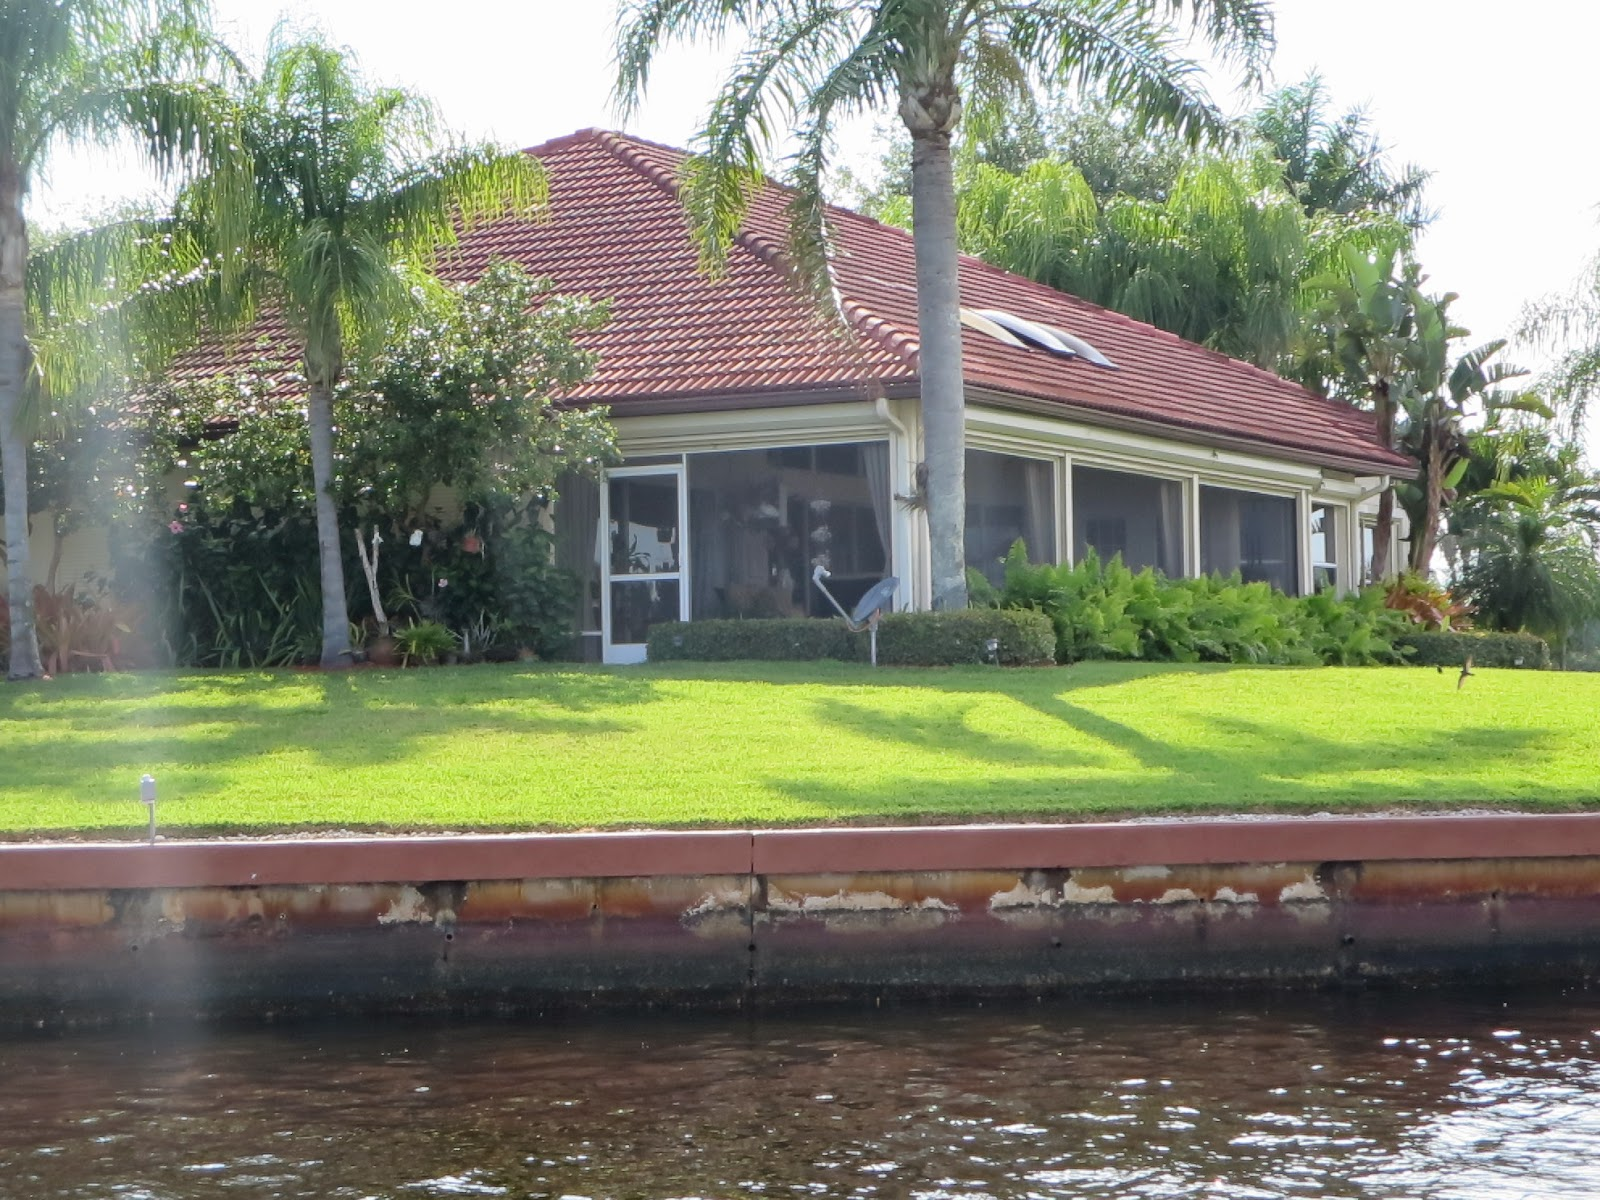 House along a channel at the edge of the Florida Everglades